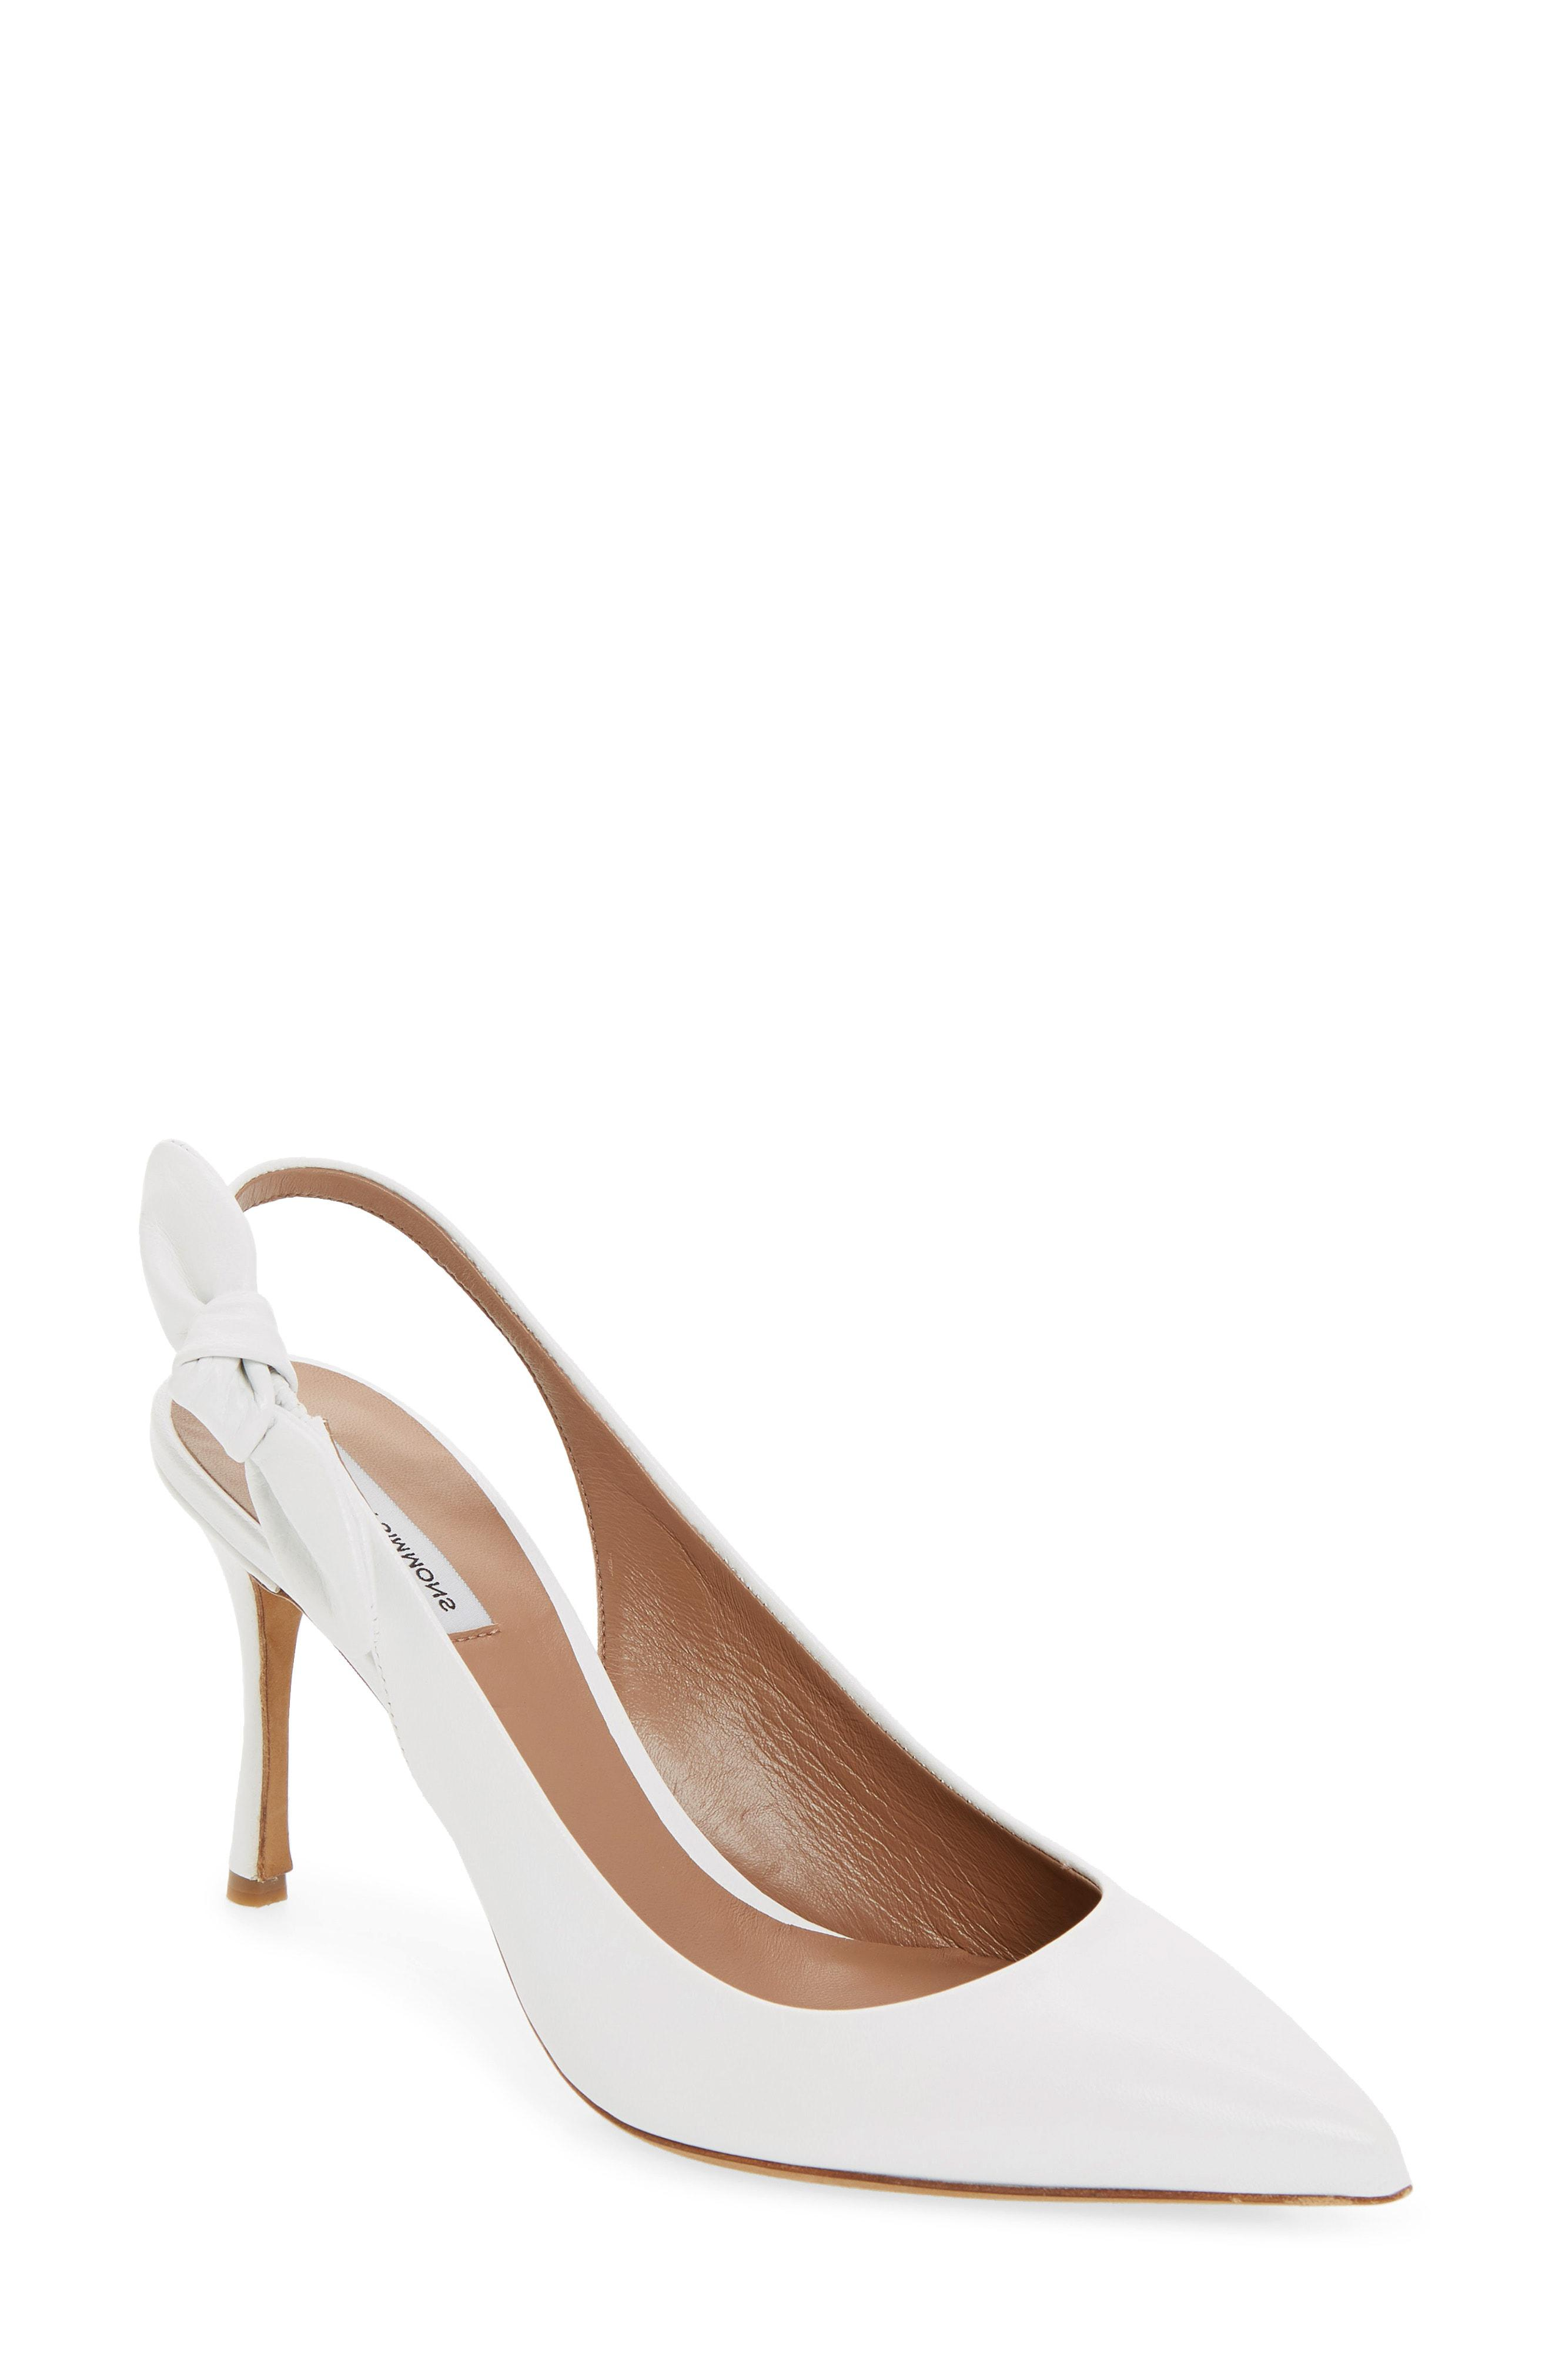 1b46c254c92 Lyst - Tabitha Simmons Millie Bow Slingback Pump in White